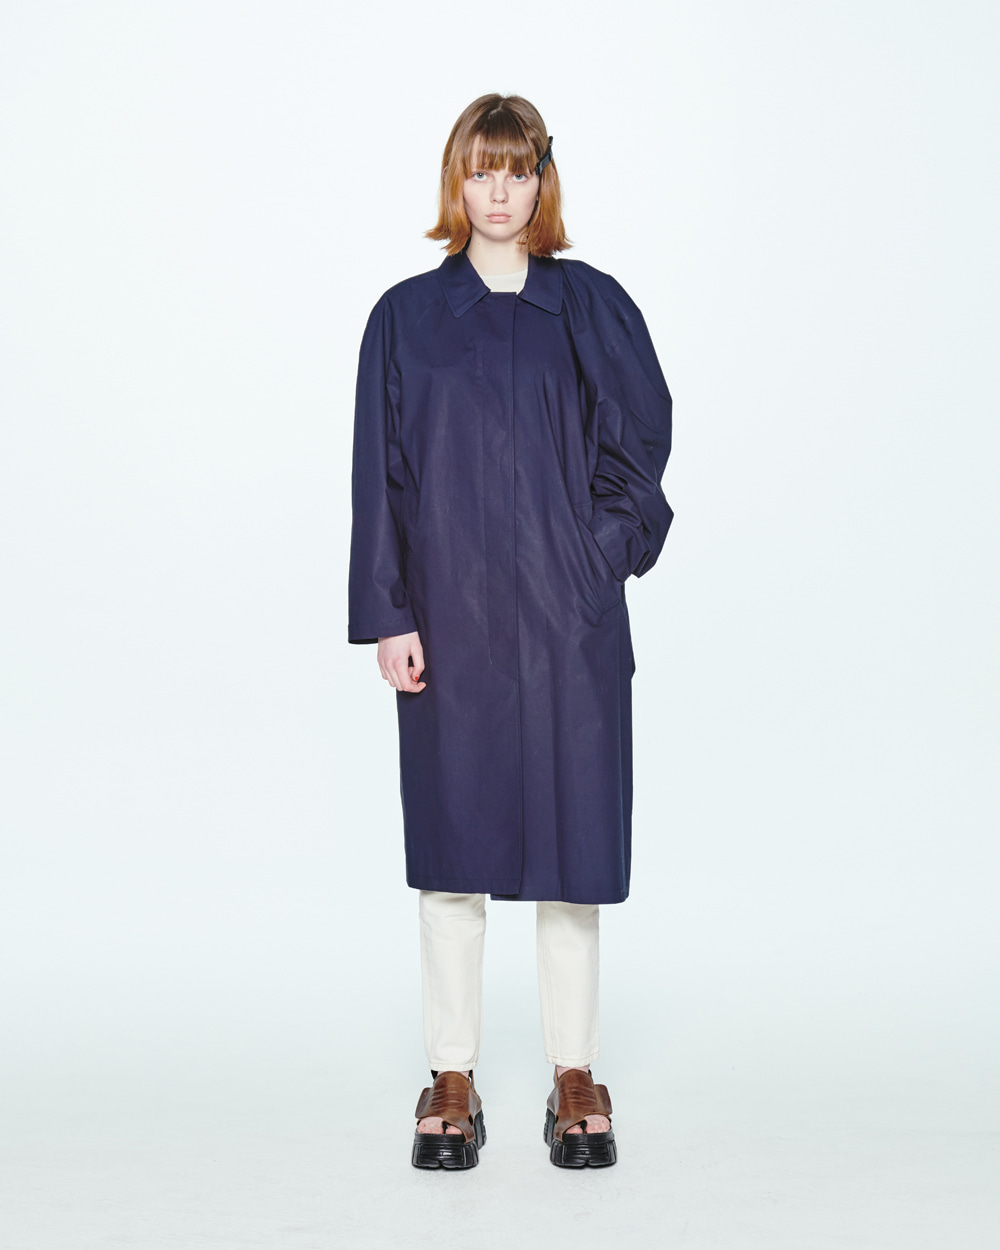 SS20 UNBALANCE SHOULDER NAVY COAT